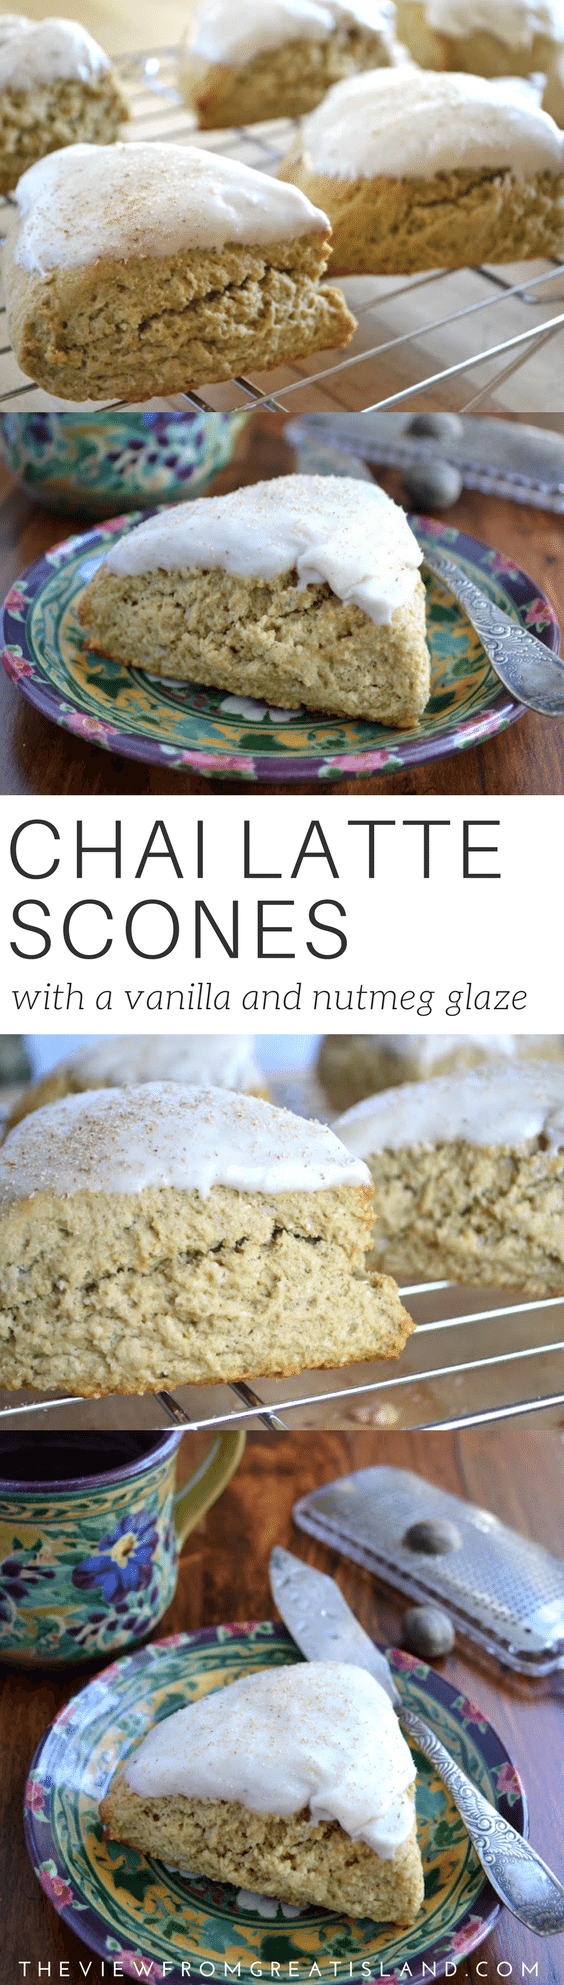 Chai Latte Scones ~ chai, the mixed spice tea from India, has the most wonderful spices in it, but I'm not much of a tea drinker, so I made my scones with coffee instead. #breakfast #scones #chaitea #chai #baking #breakfastrecipe